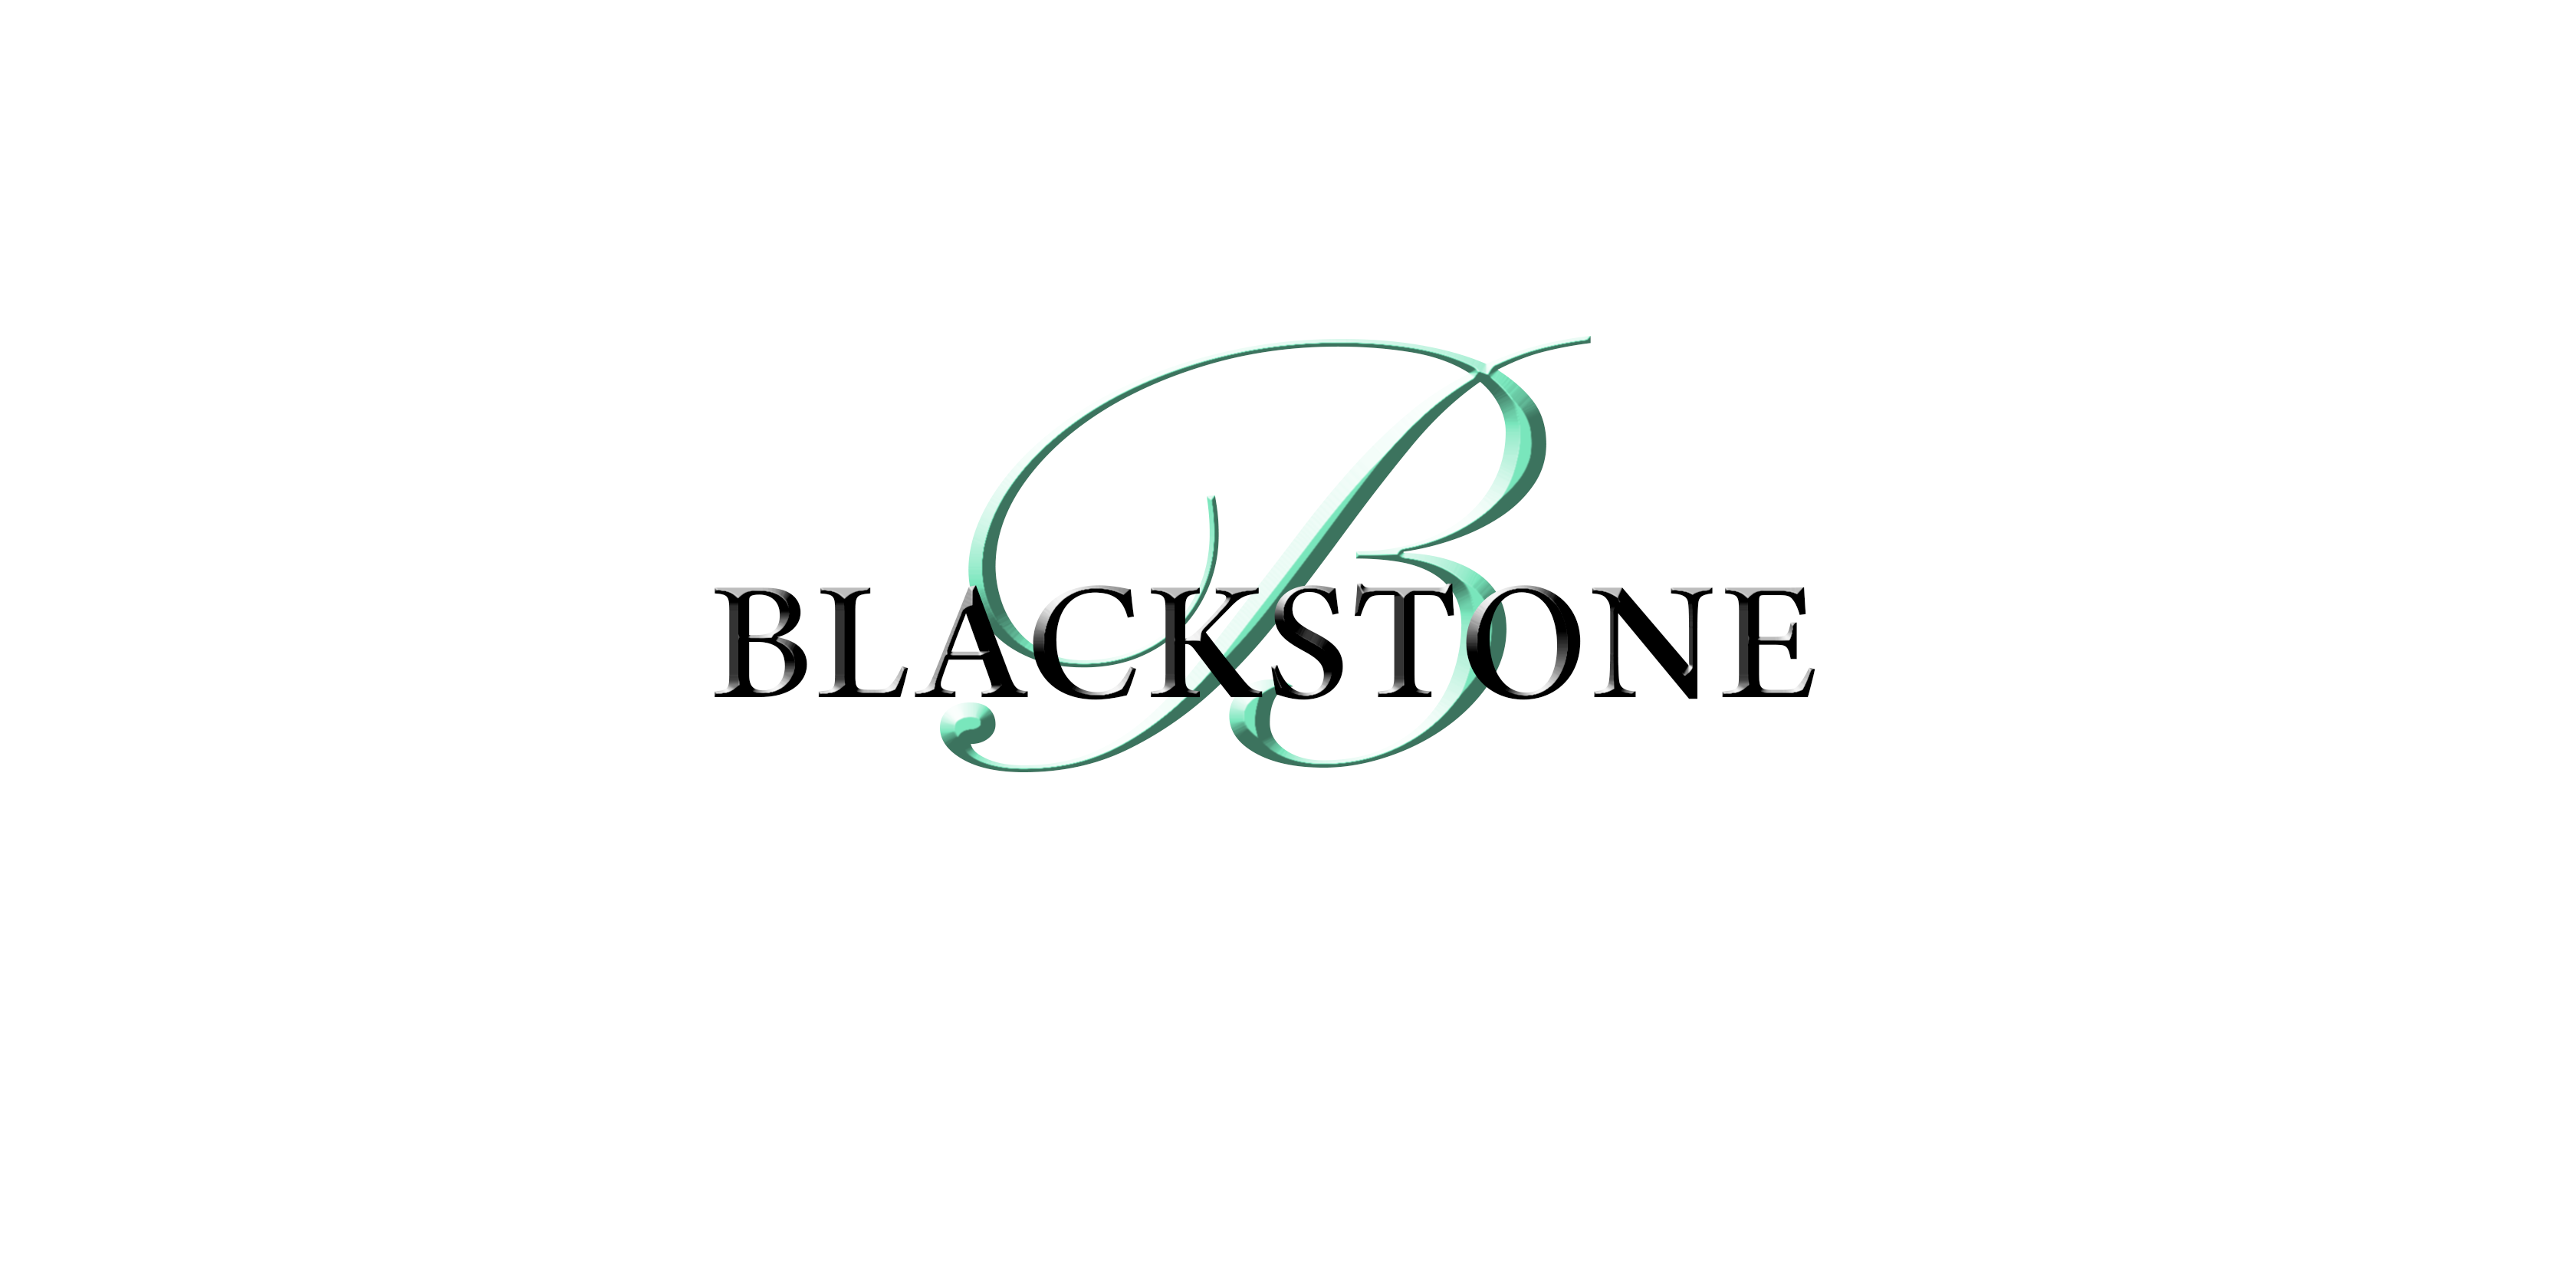 House for sale: Blackstone